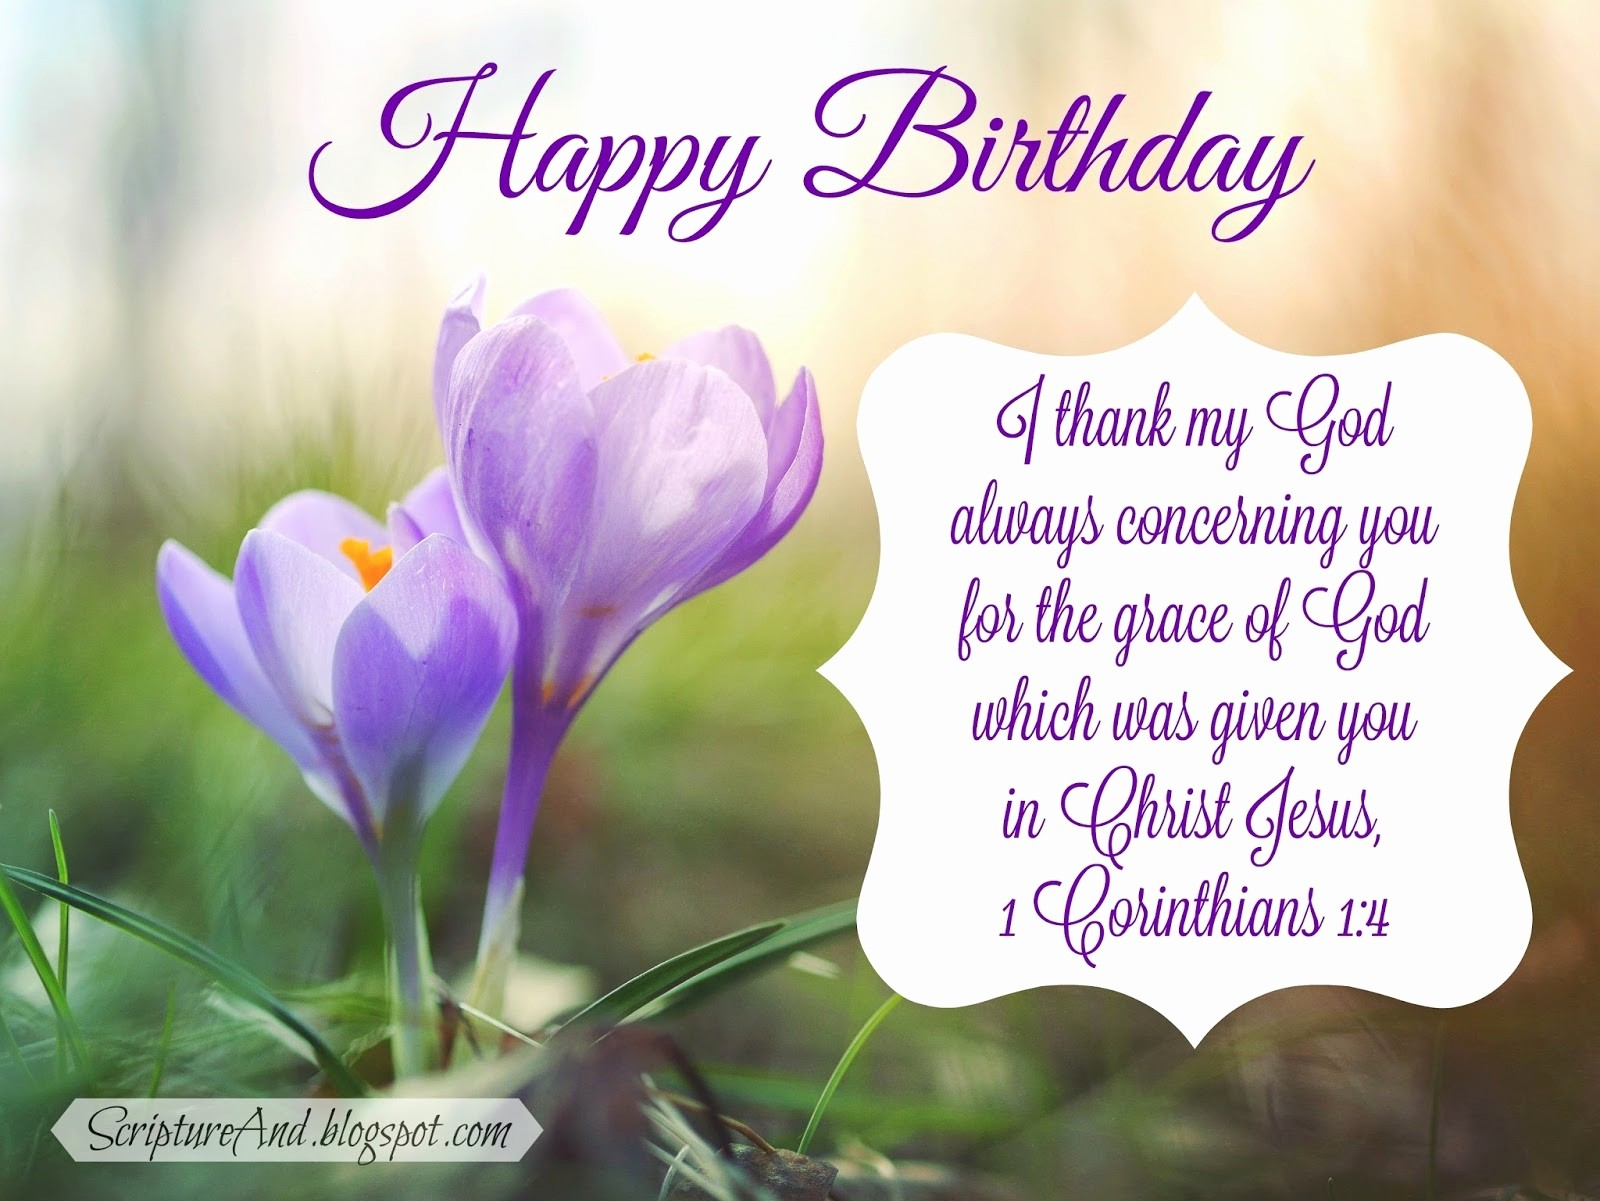 spiritual happy birthday images ; inspirational-birthday-wishes-wonderful-online-in-excess-of-spiritual-happy-birthday-wishes-birthday-quotes-for-sister-of-inspirational-birthday-wishes